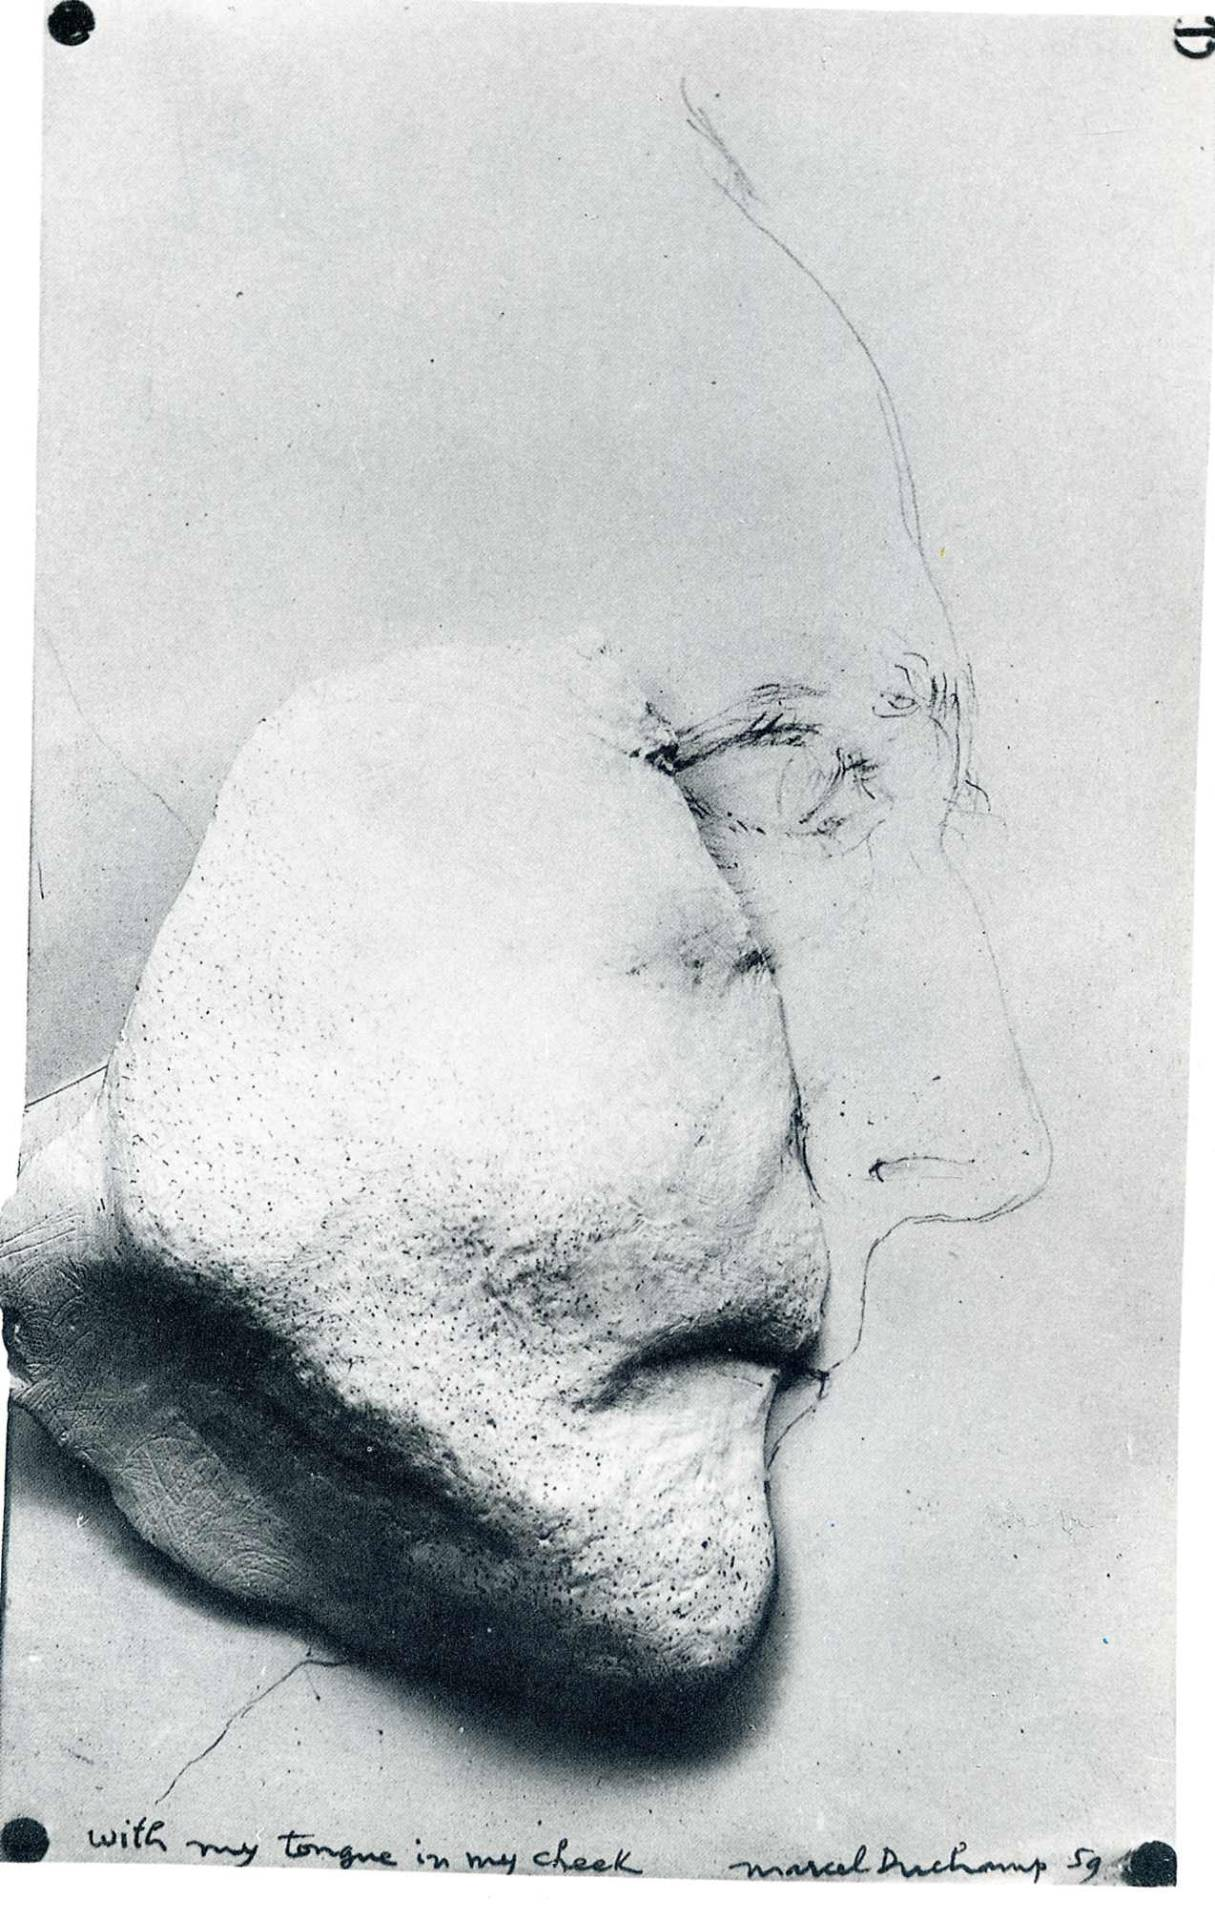 free-parking:  Marcel Duchamp, With My Tongue in My Cheek, 1959